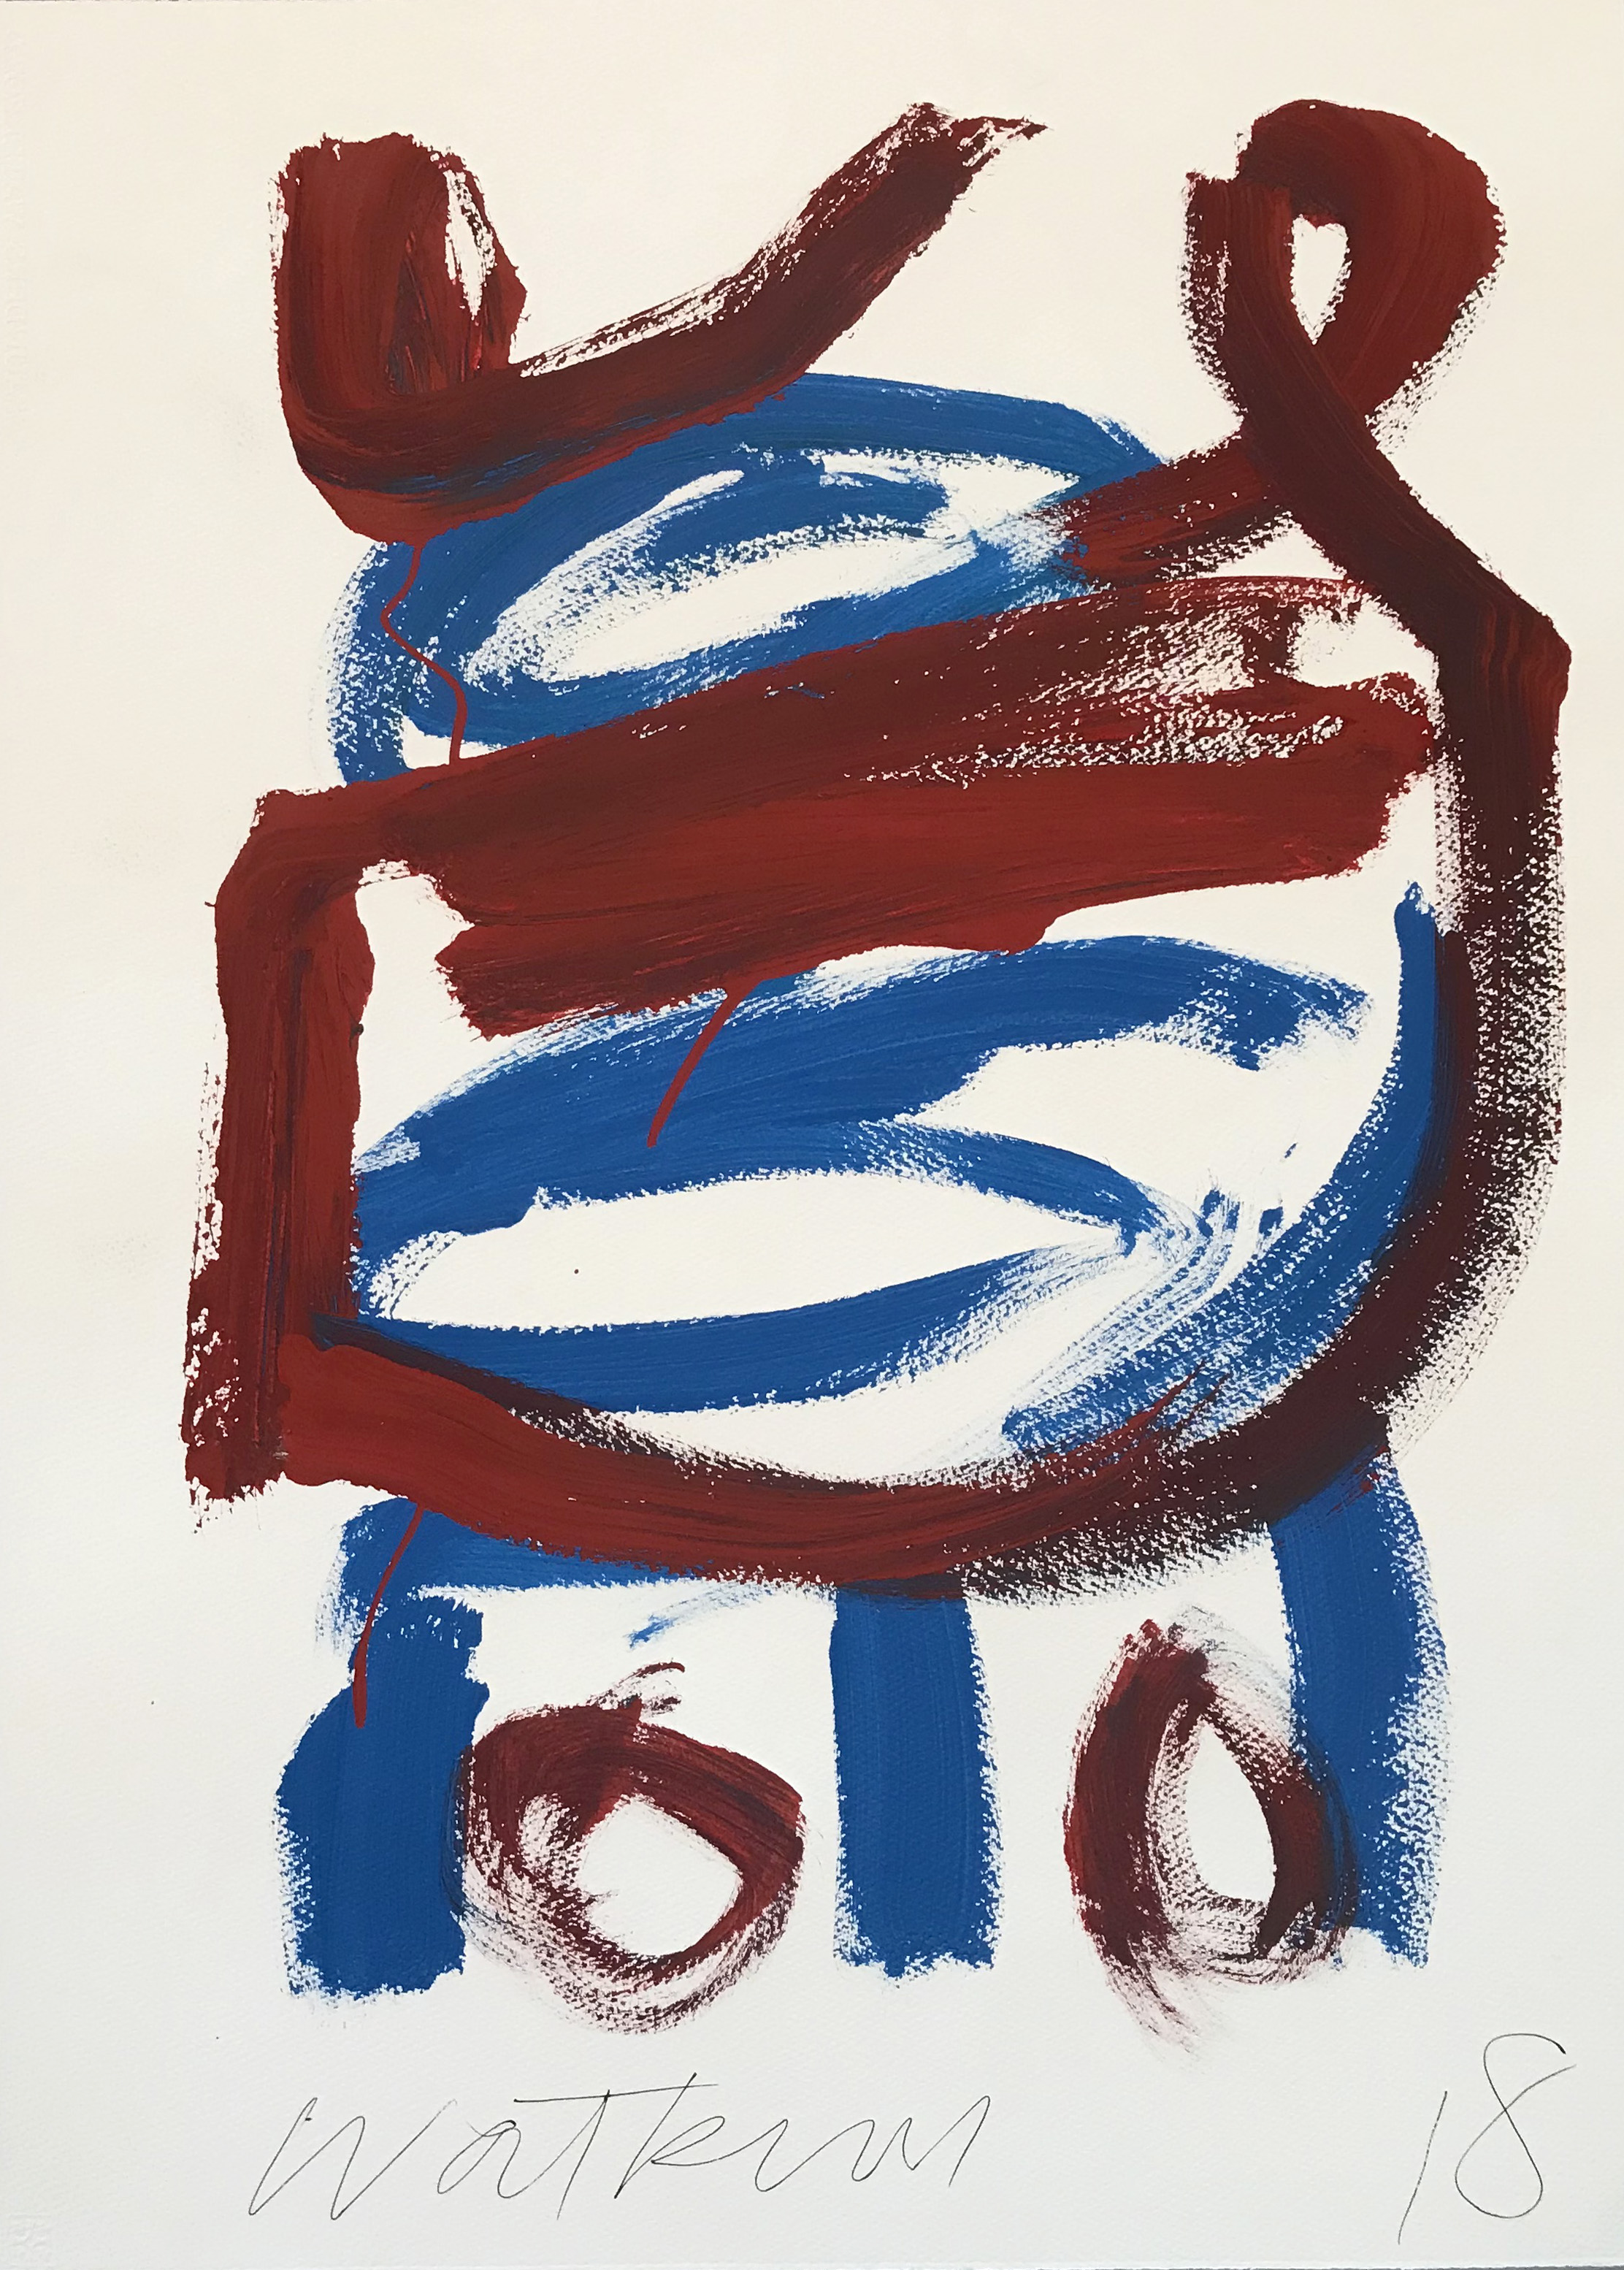 DICK WATKINS  Untitled drawing 07 , 2018 acrylic on 300gsm paper 76 x 56 cm